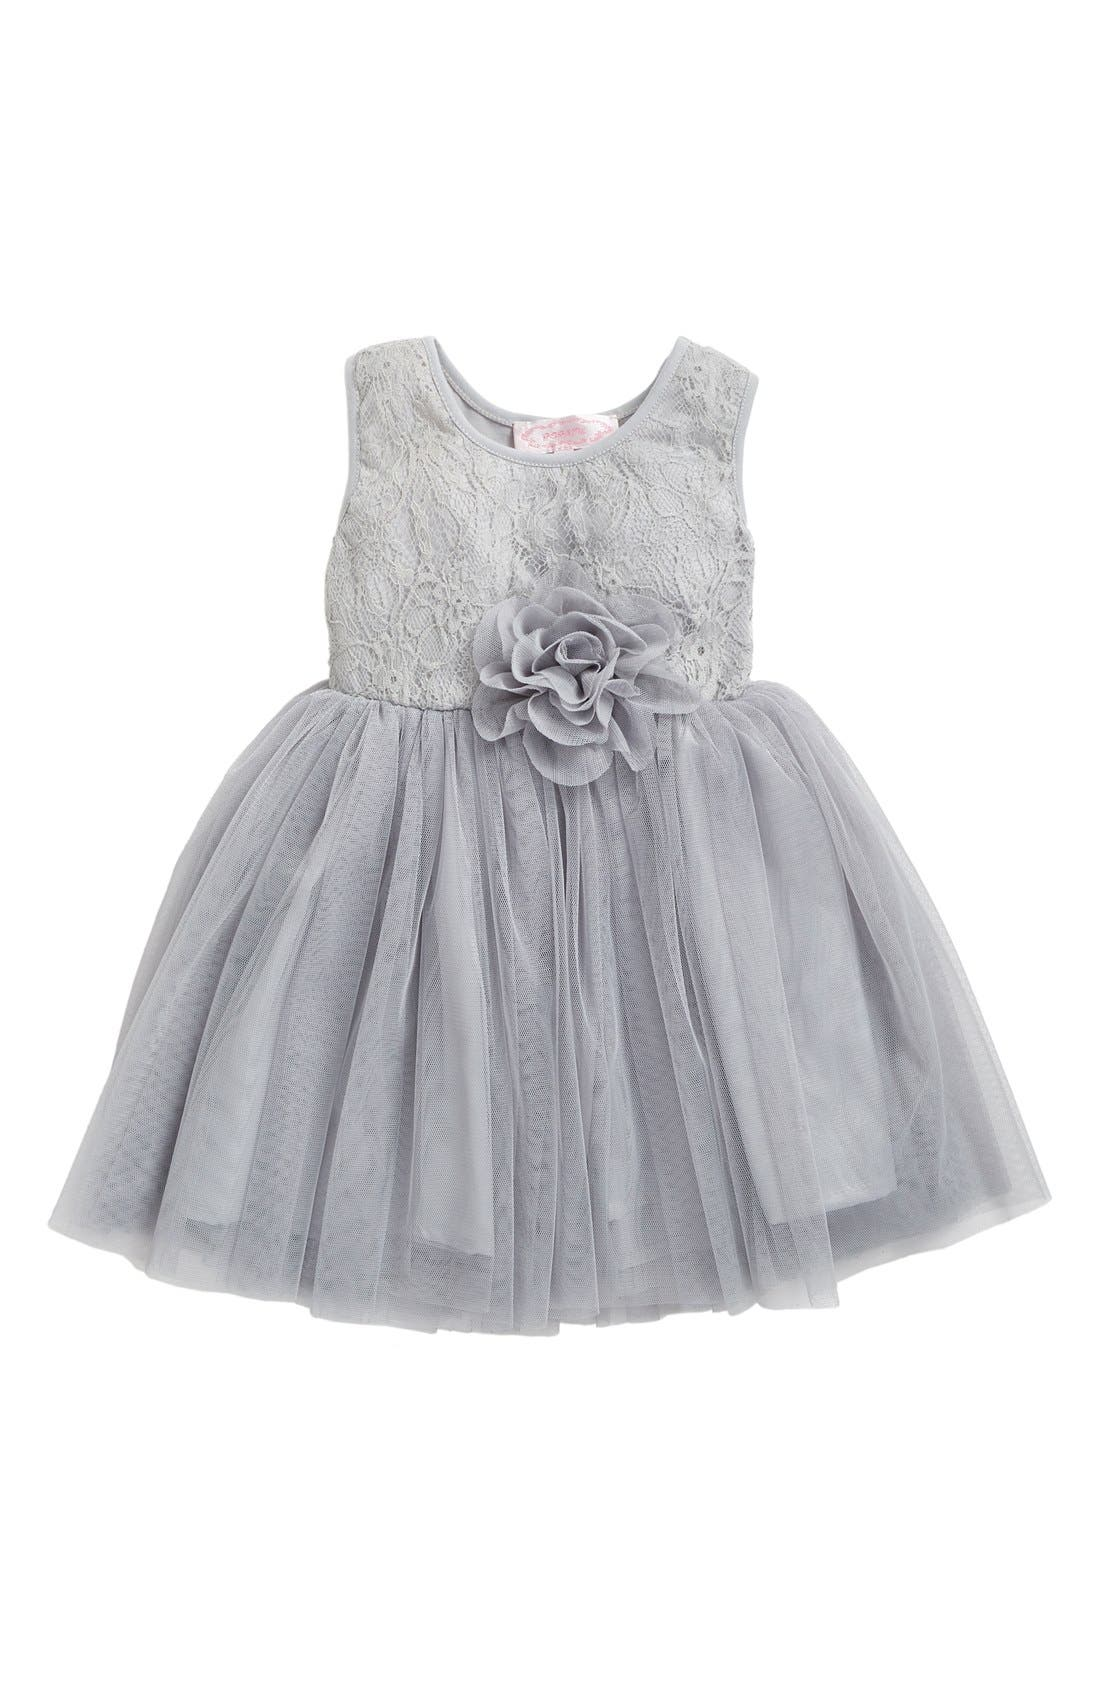 Floral Lace & Tulle Dress,                         Main,                         color, Silver